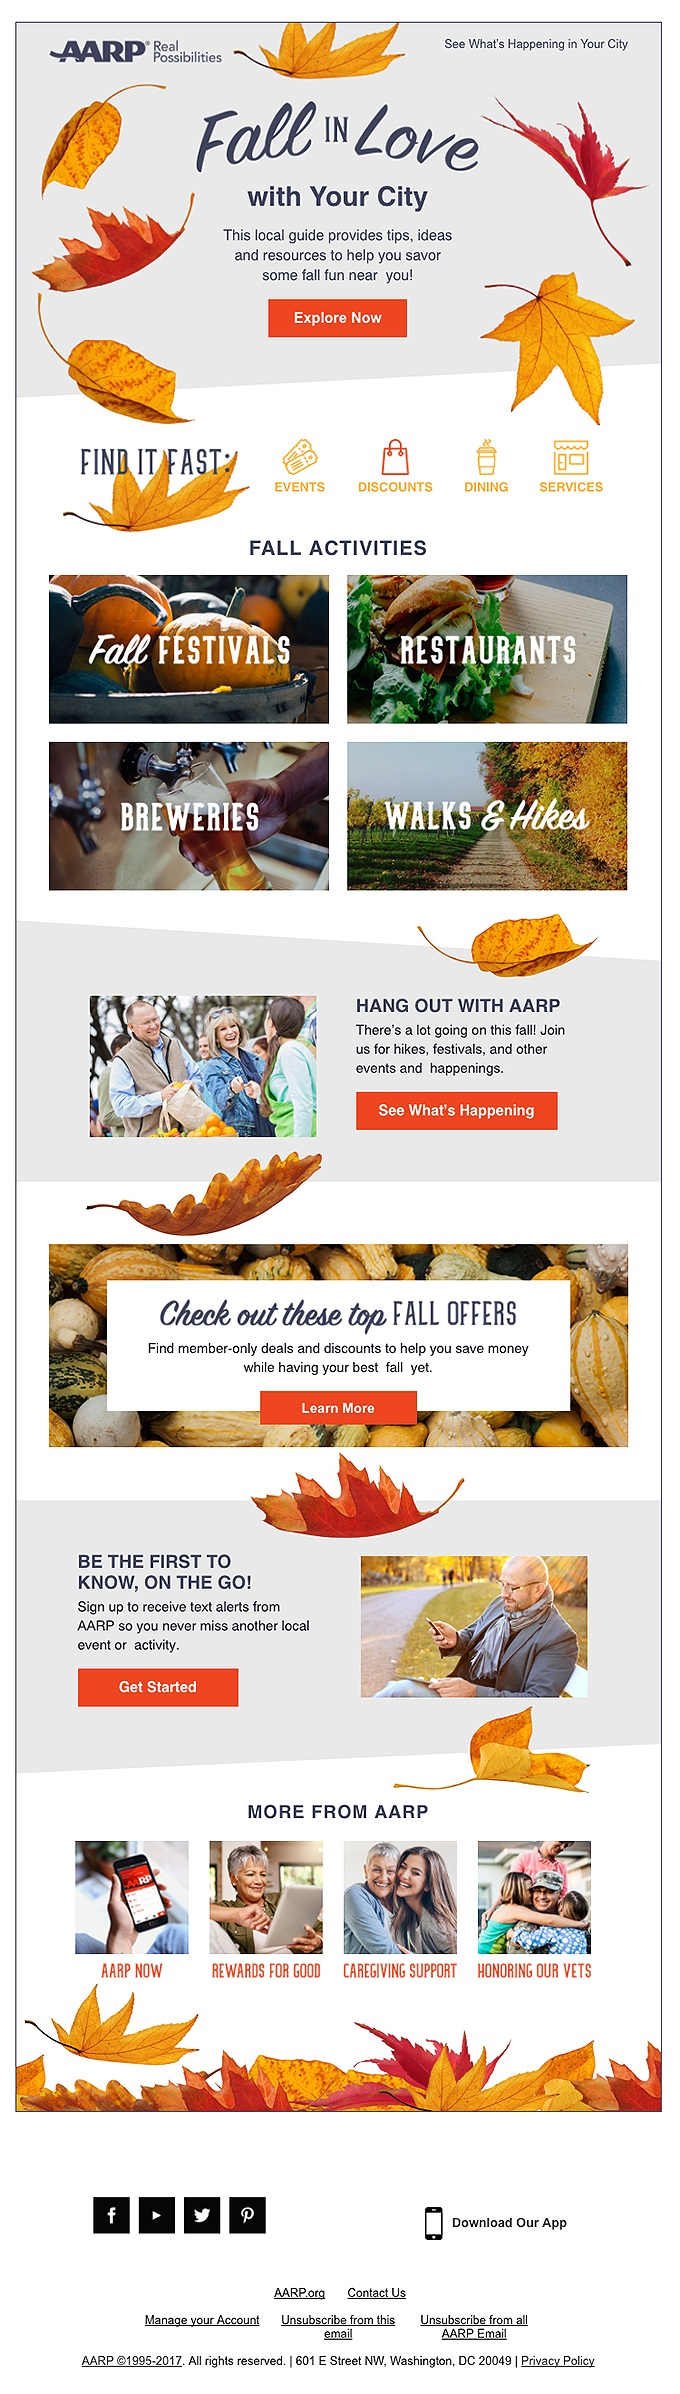 AARP knows their audience well and delivers messages that pack a ton of value for their readers.